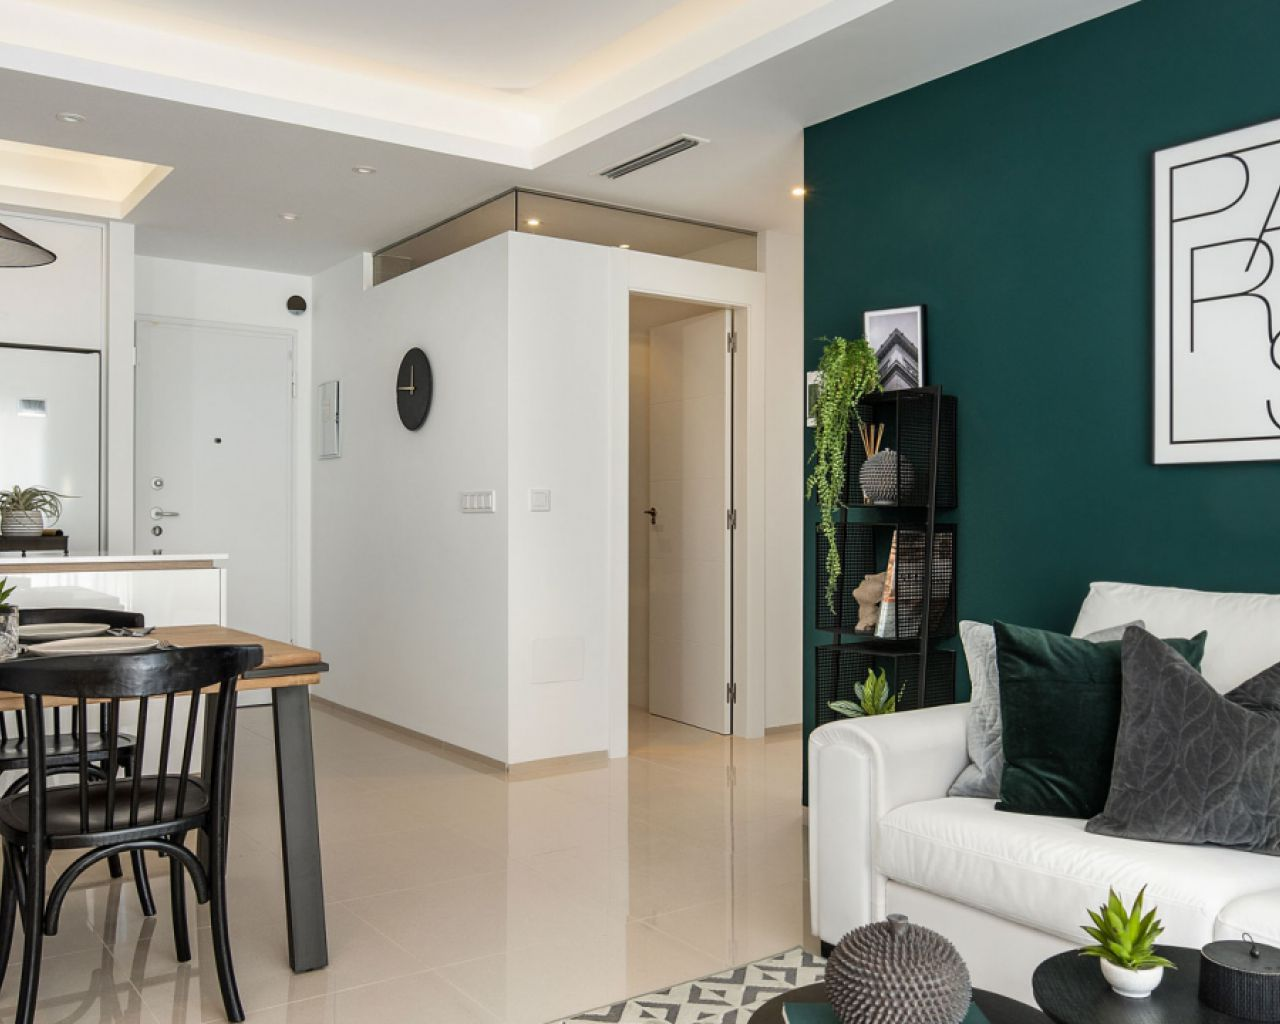 Nýbygging - Apartment/Flat - Ciudad Quesada - Dona Pepa